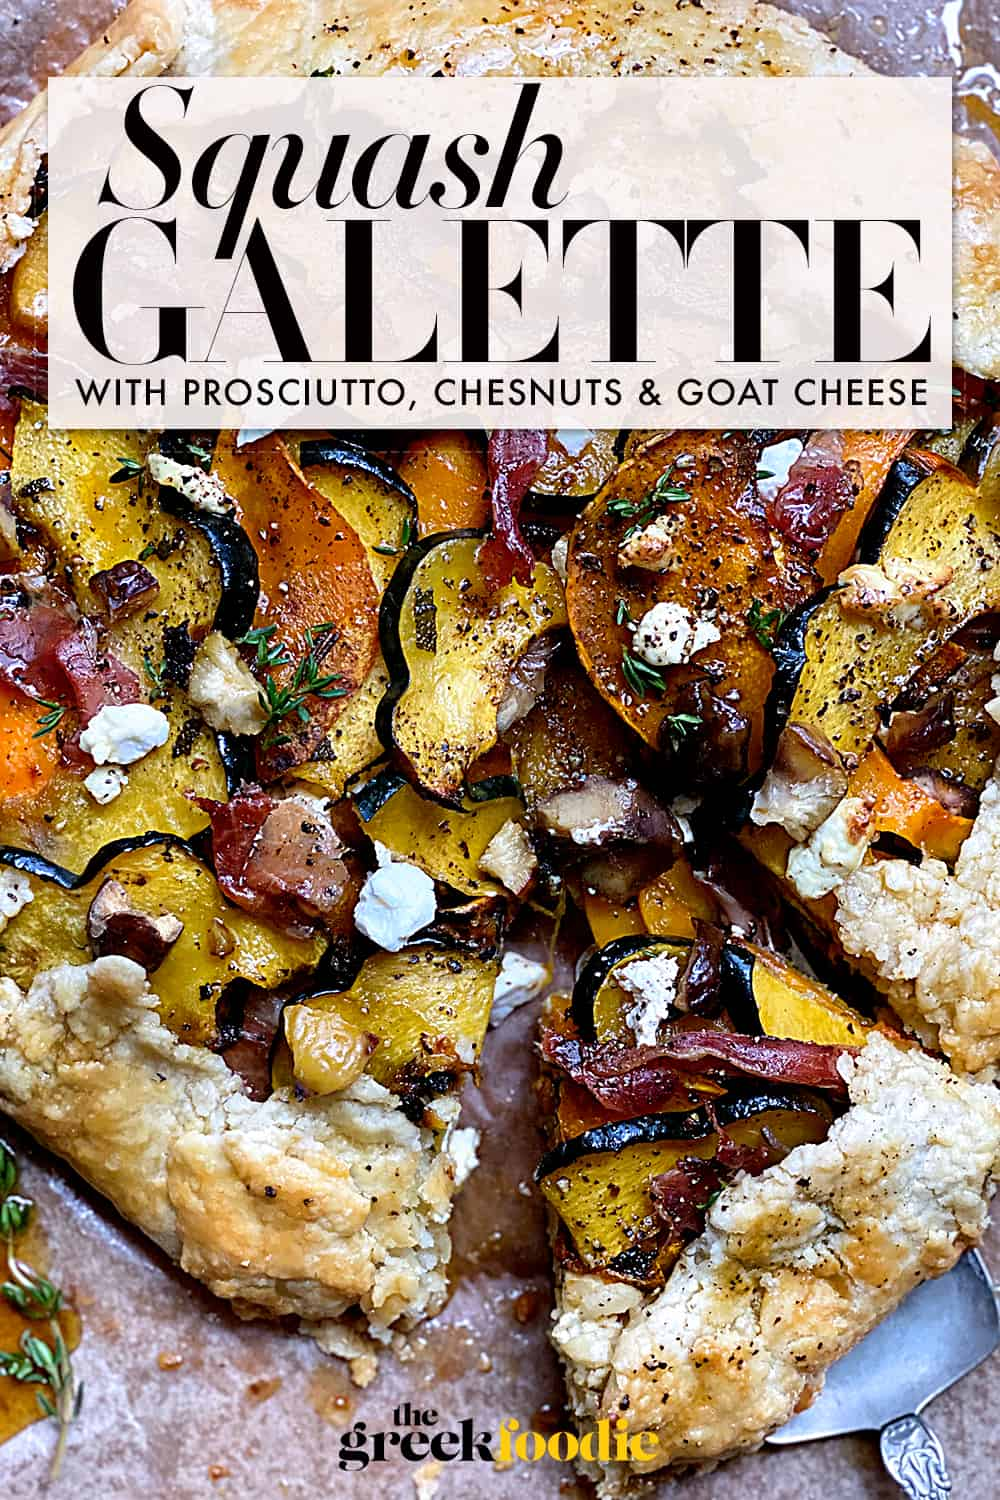 Squash Galette With Goat Cheese & Prosciutto